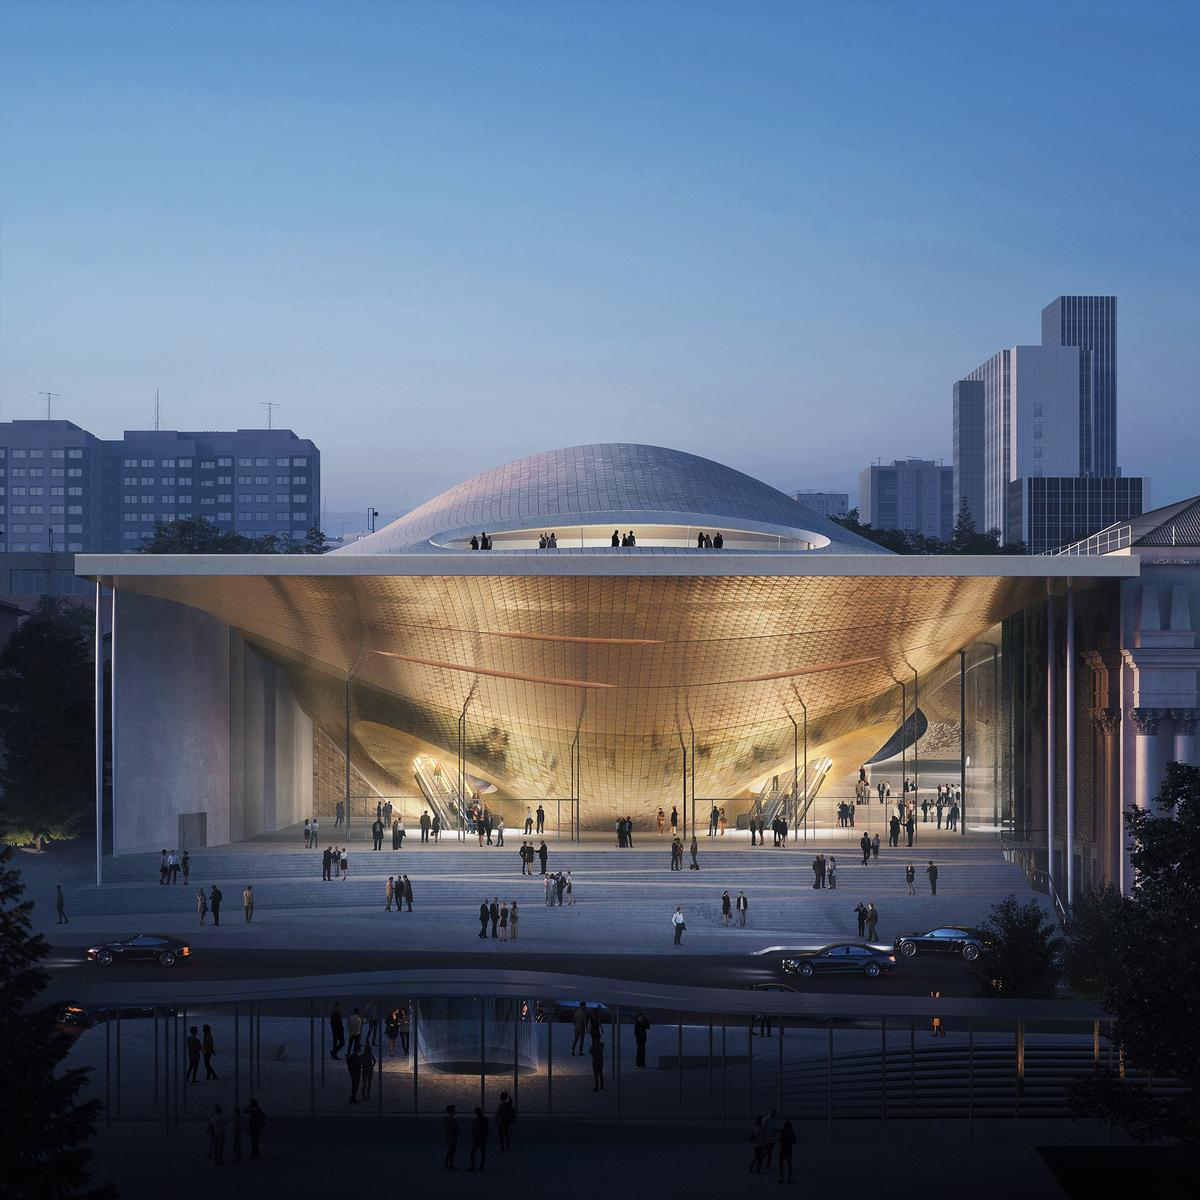 Dmitry Liss, artistic director and principal conductor of the Ural Philharmonic Orchestra said the ZHA-designed concert hall would 'bring sound to life' / Courtesy of Zaha Hadid Architects